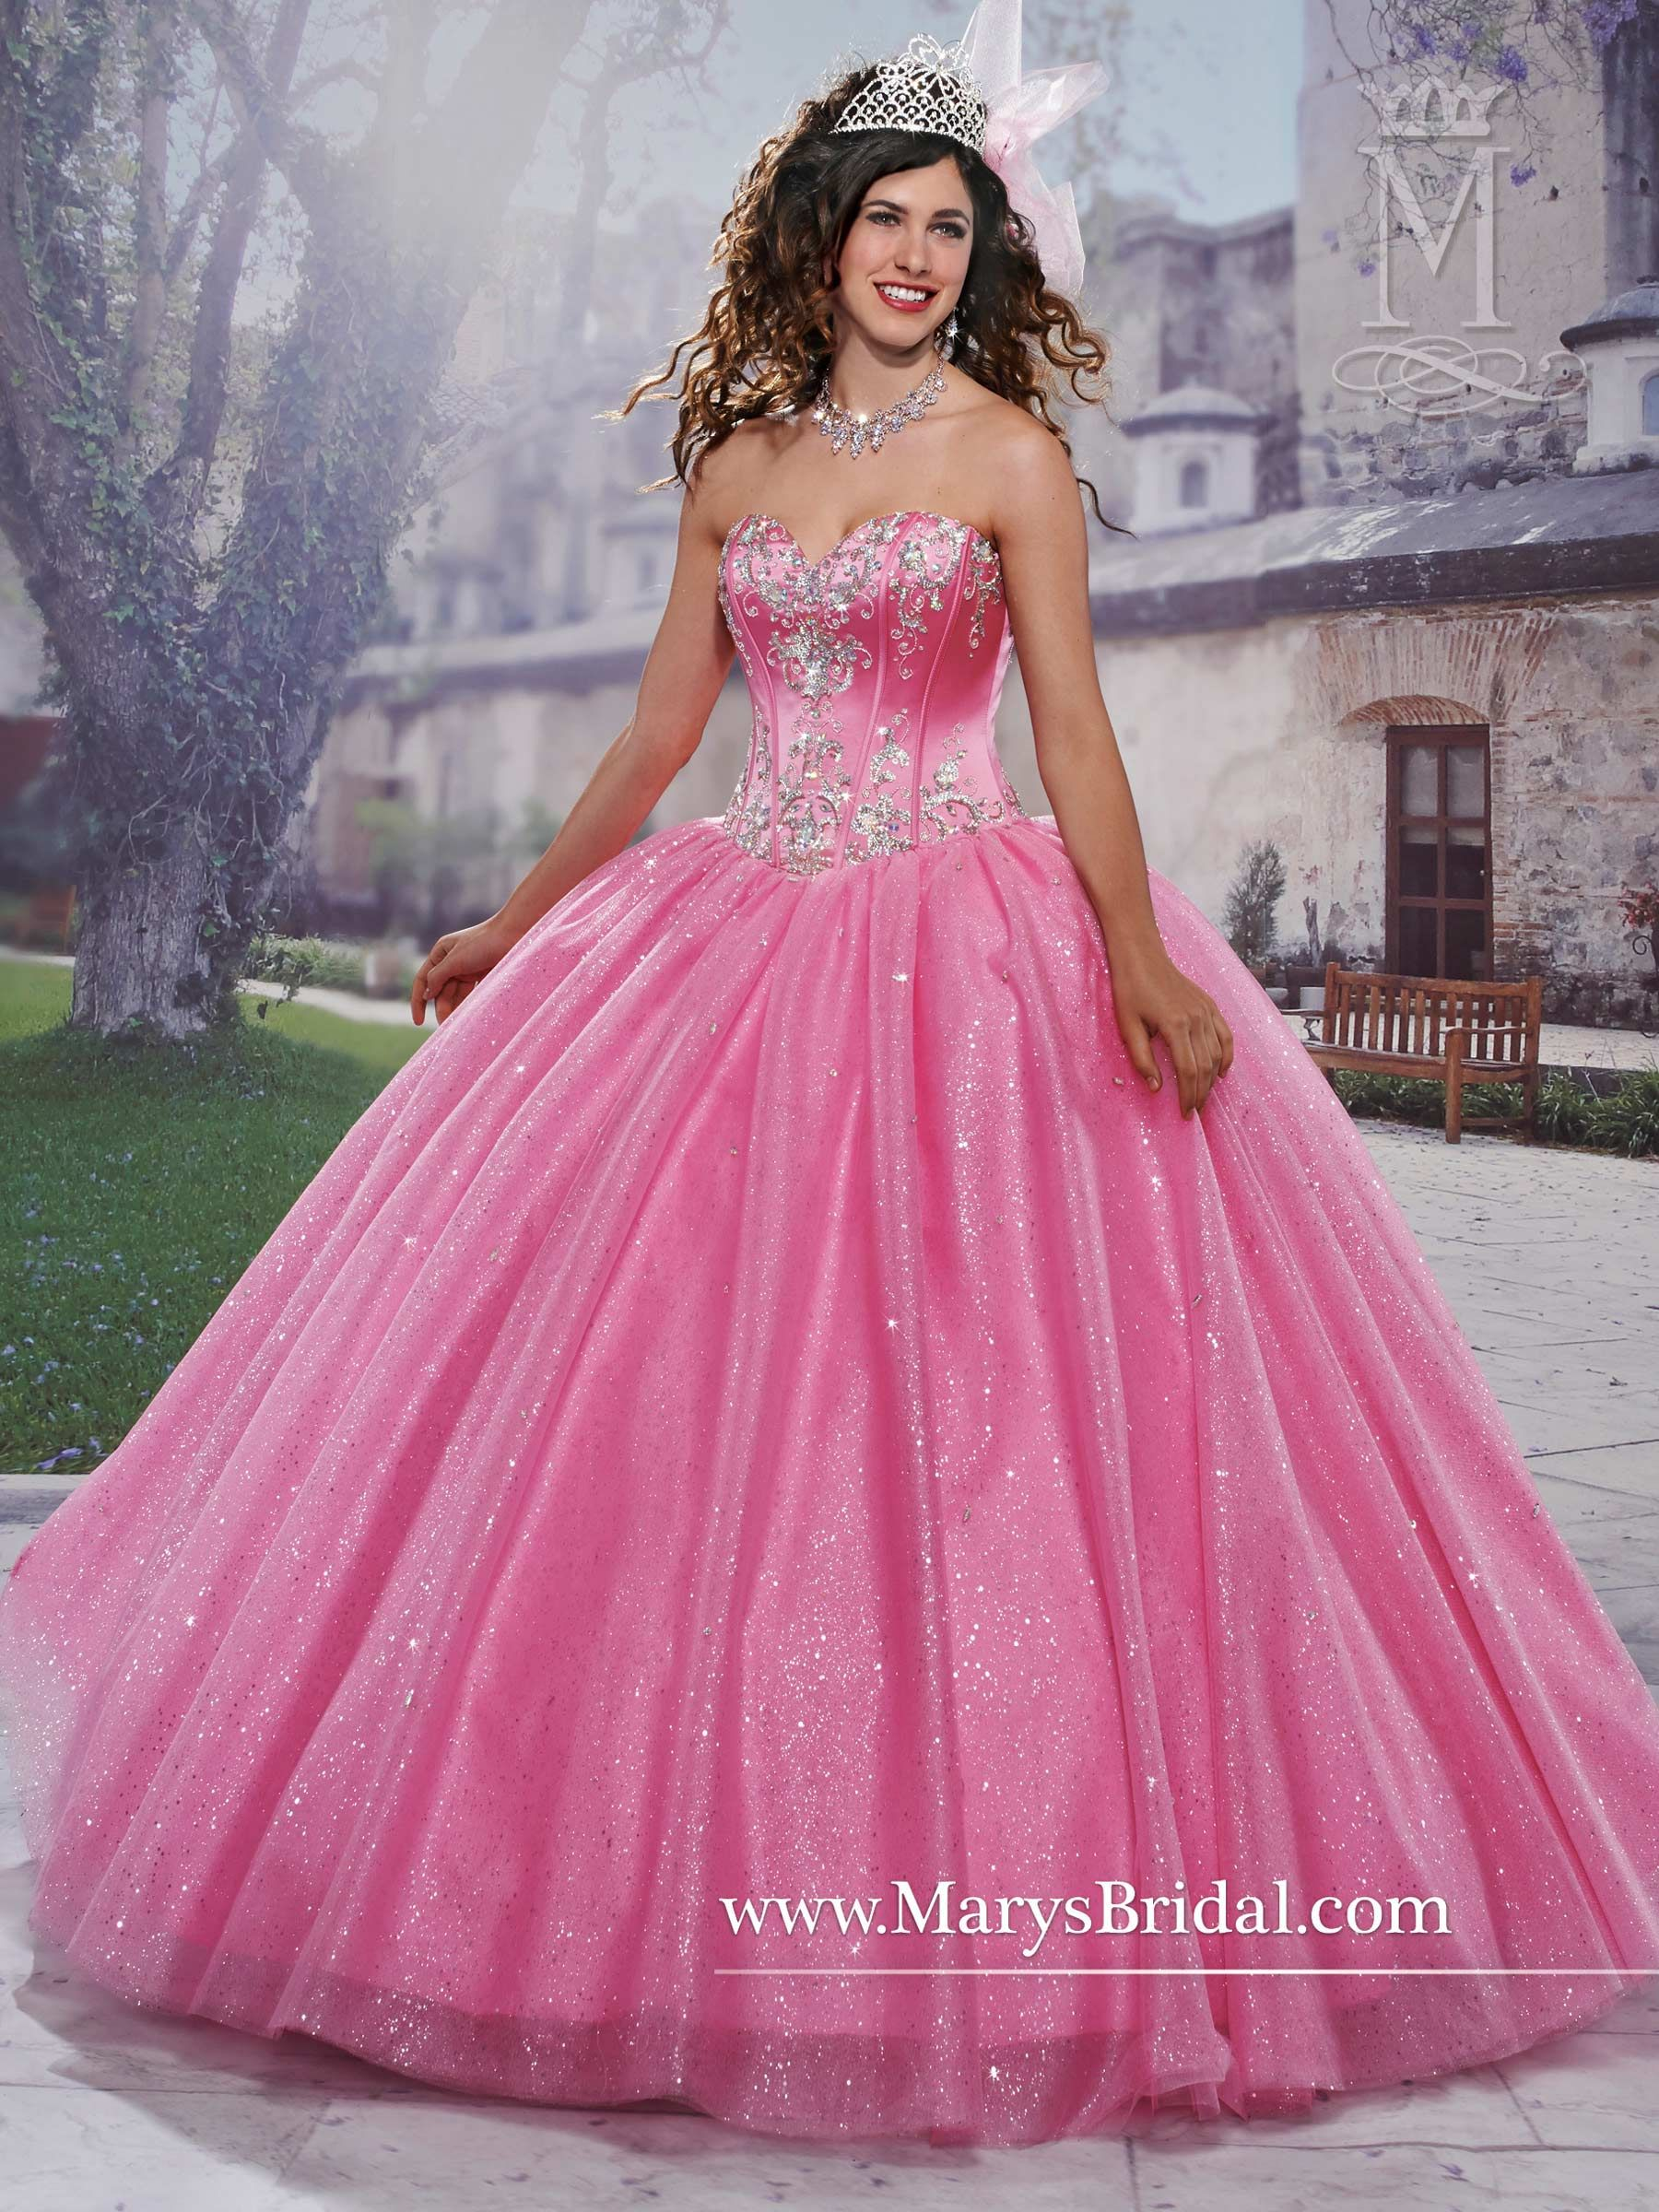 Pin de Sue Jones en Quinceanera 2017 | Pinterest | Quinceañera ...